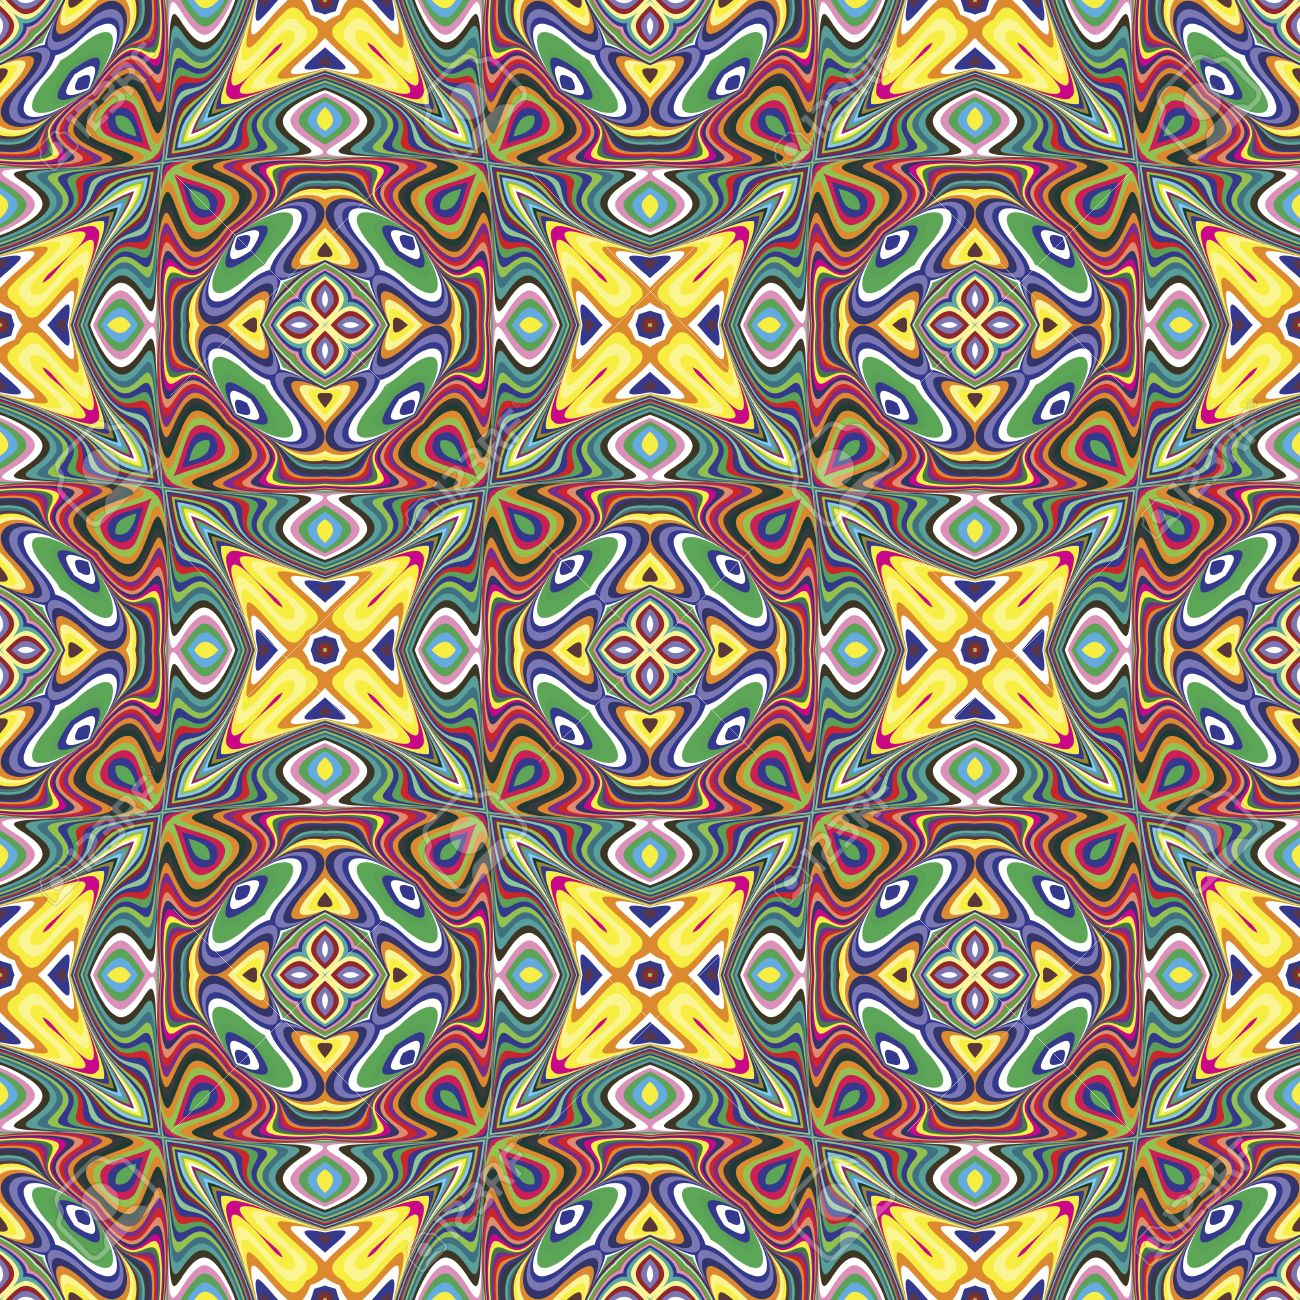 Modern indian pattern with spiritual symbols derived from ancient modern indian pattern with spiritual symbols derived from ancient motifs in vivid and brilliant colors buycottarizona Choice Image